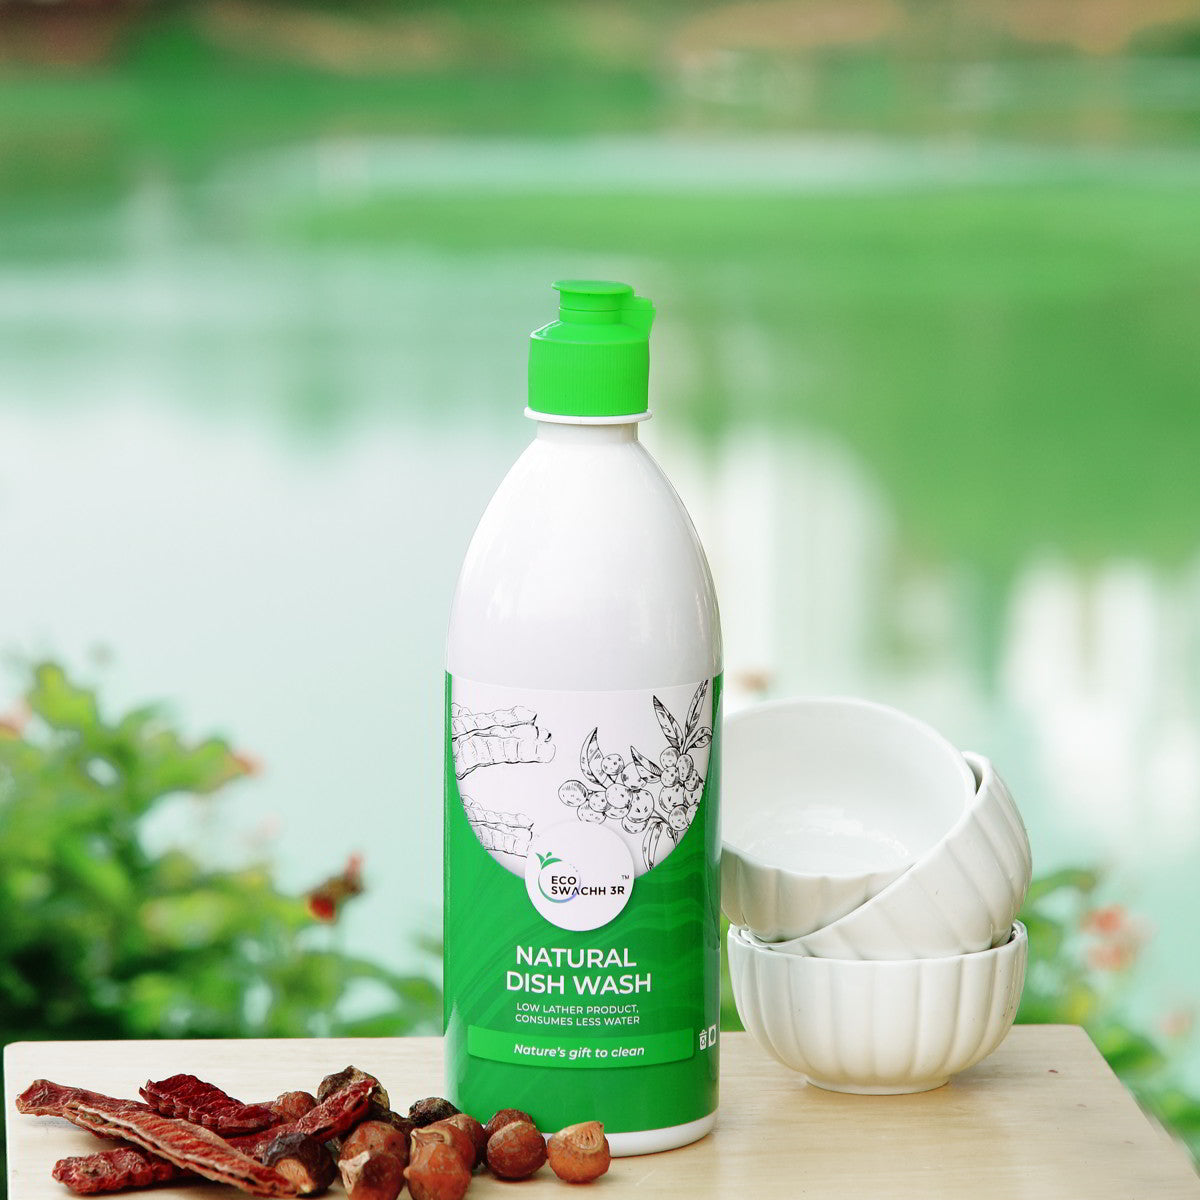 ECOSWACHH 3R - NATURAL DISH WASH 550ml